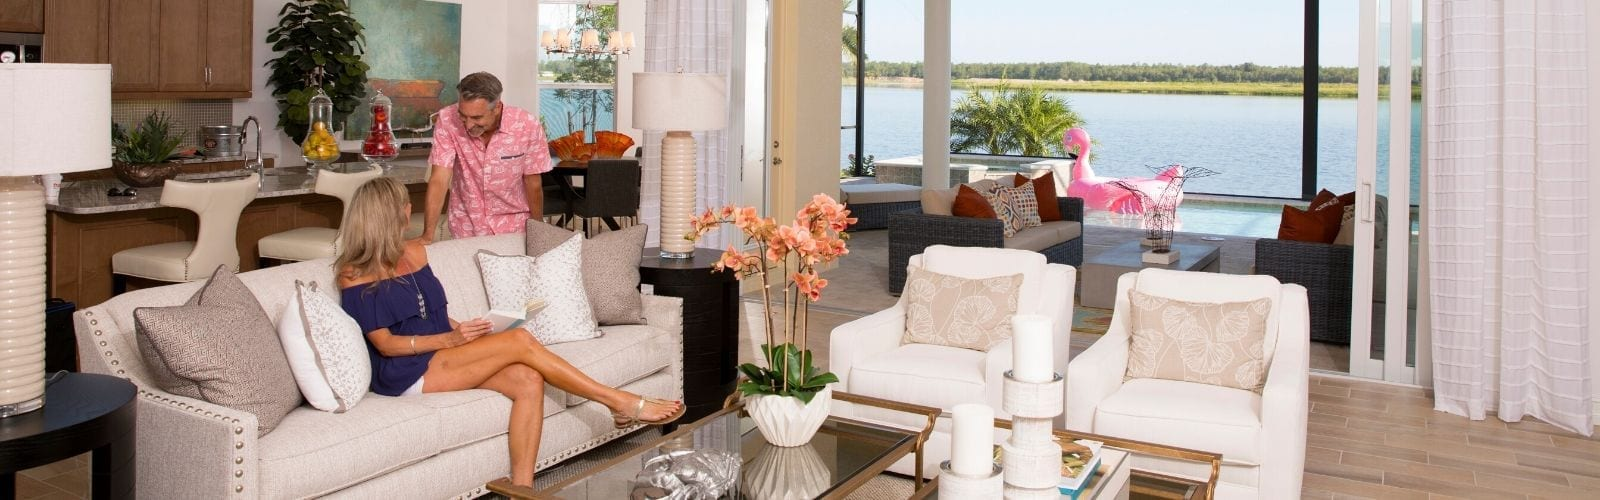 A couple enjoying the interior of their home at Naples Reserve